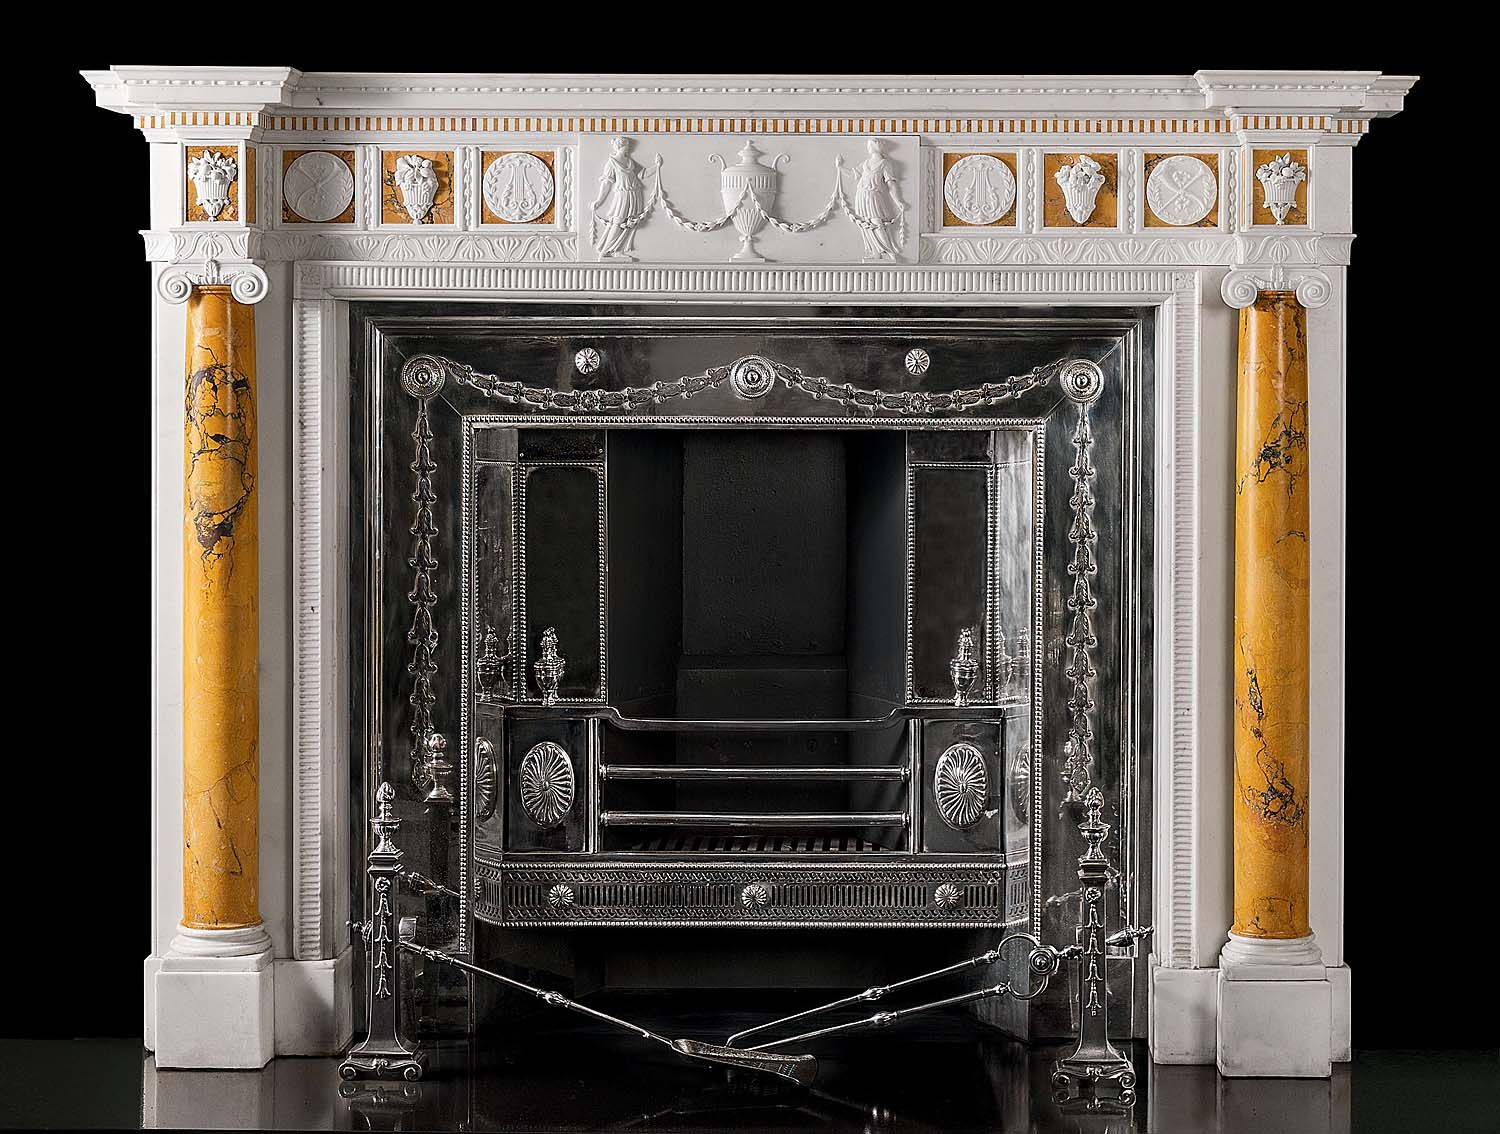 antique marble fireplace mantels. A very fine and perfectly proportioned Statuary Sienna marble  chimneypiece in the manner of James Fireplace SurroundsFireplace MantlesFireplace